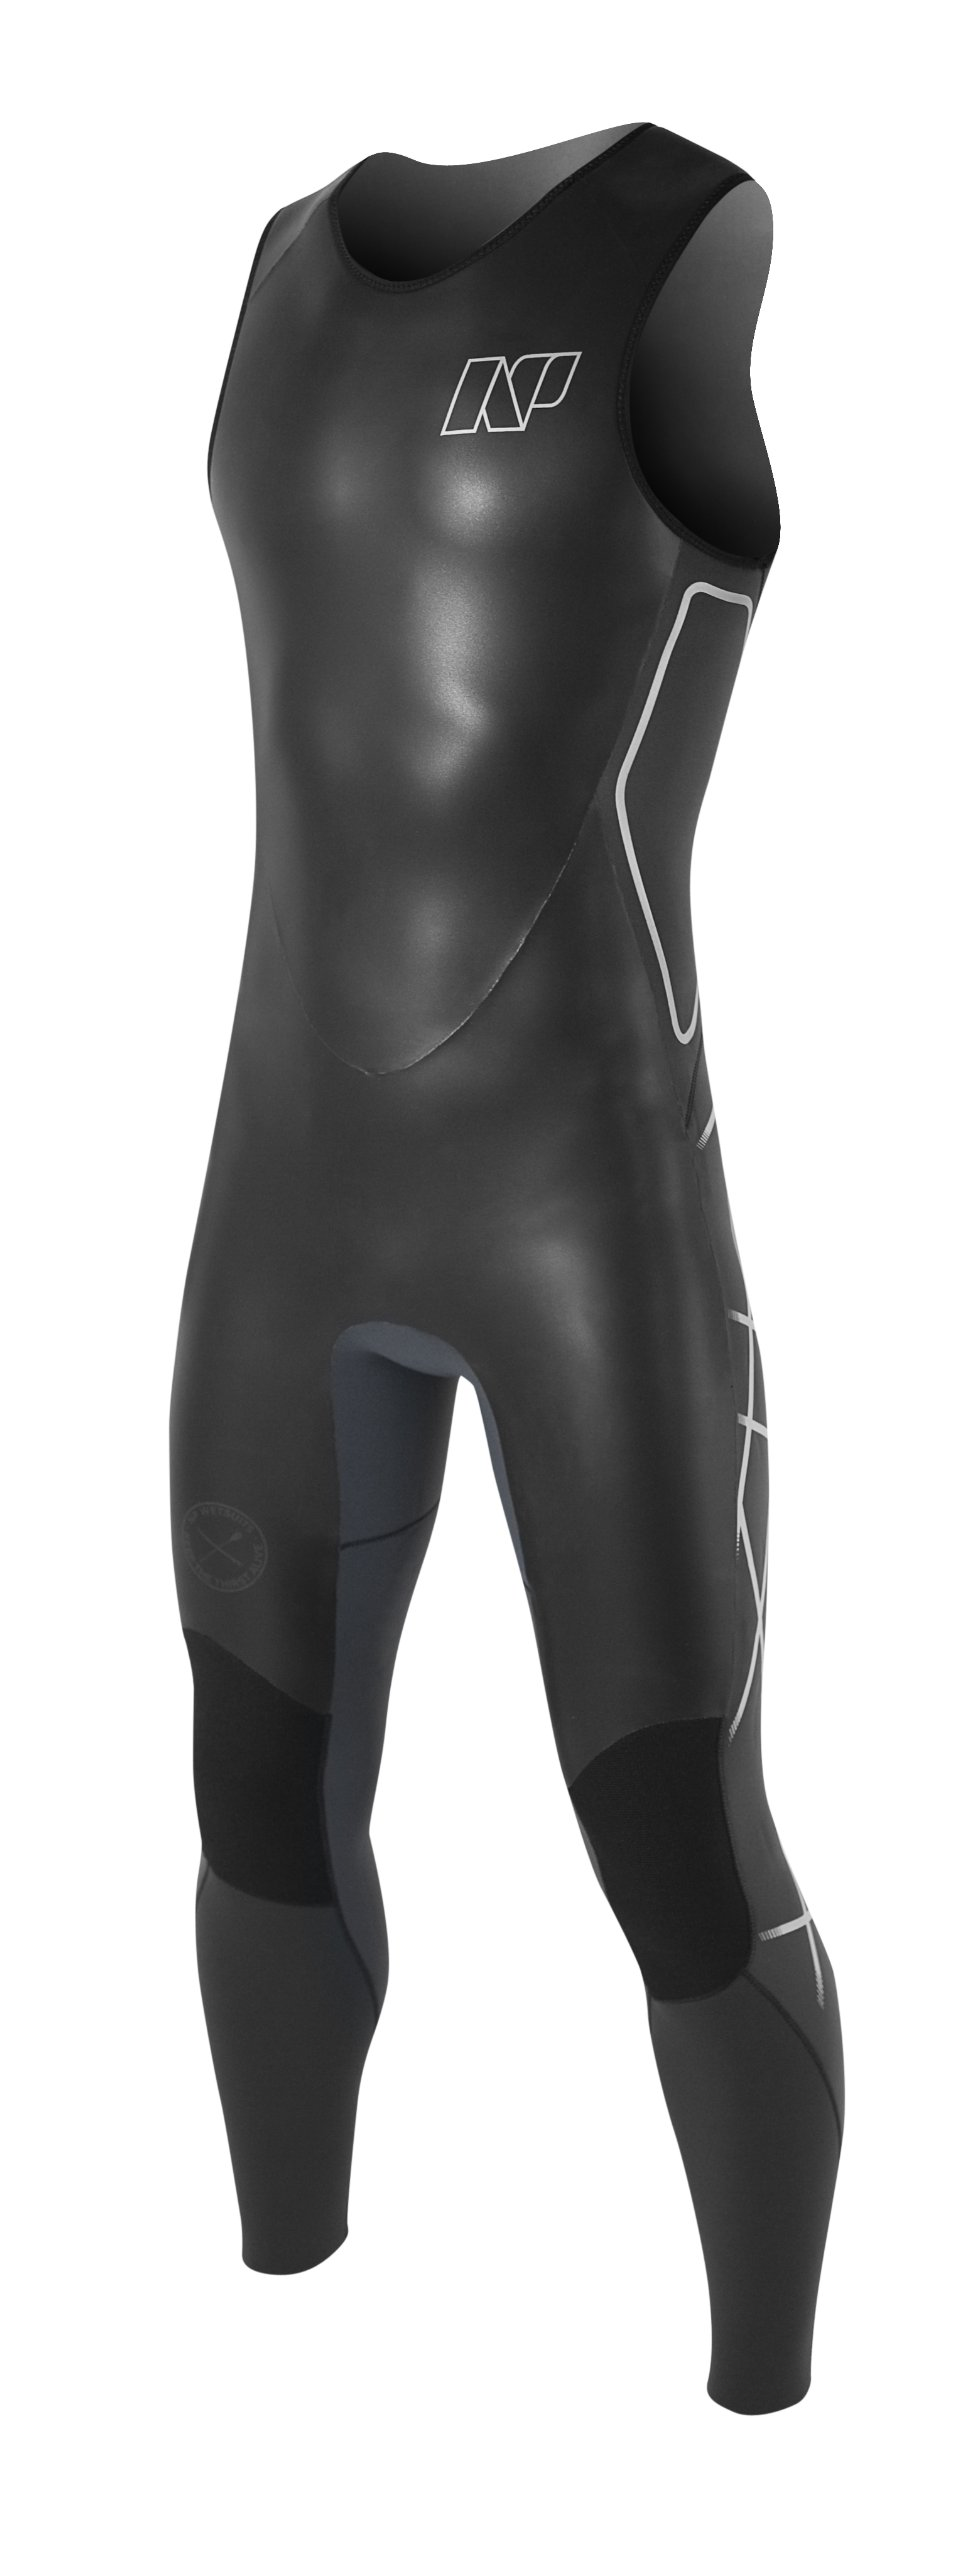 NP Surf SUP 3/3mm Long John Wetsuit, Black, X-Large by NP Surf